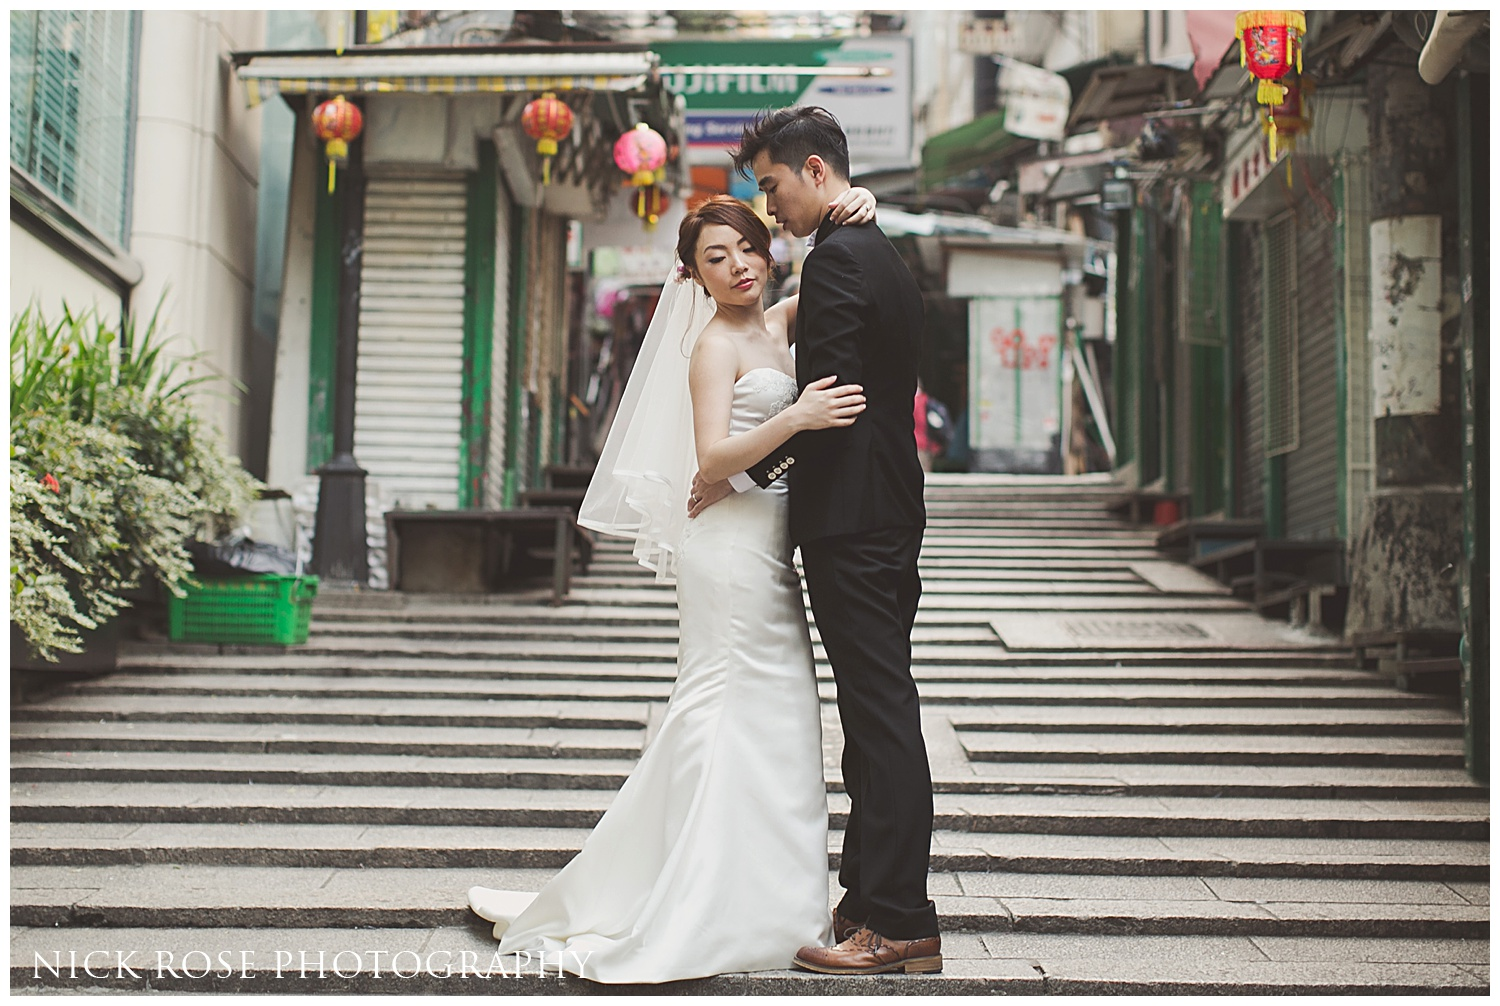 Hong Kong Wedding Photography_0108.jpg